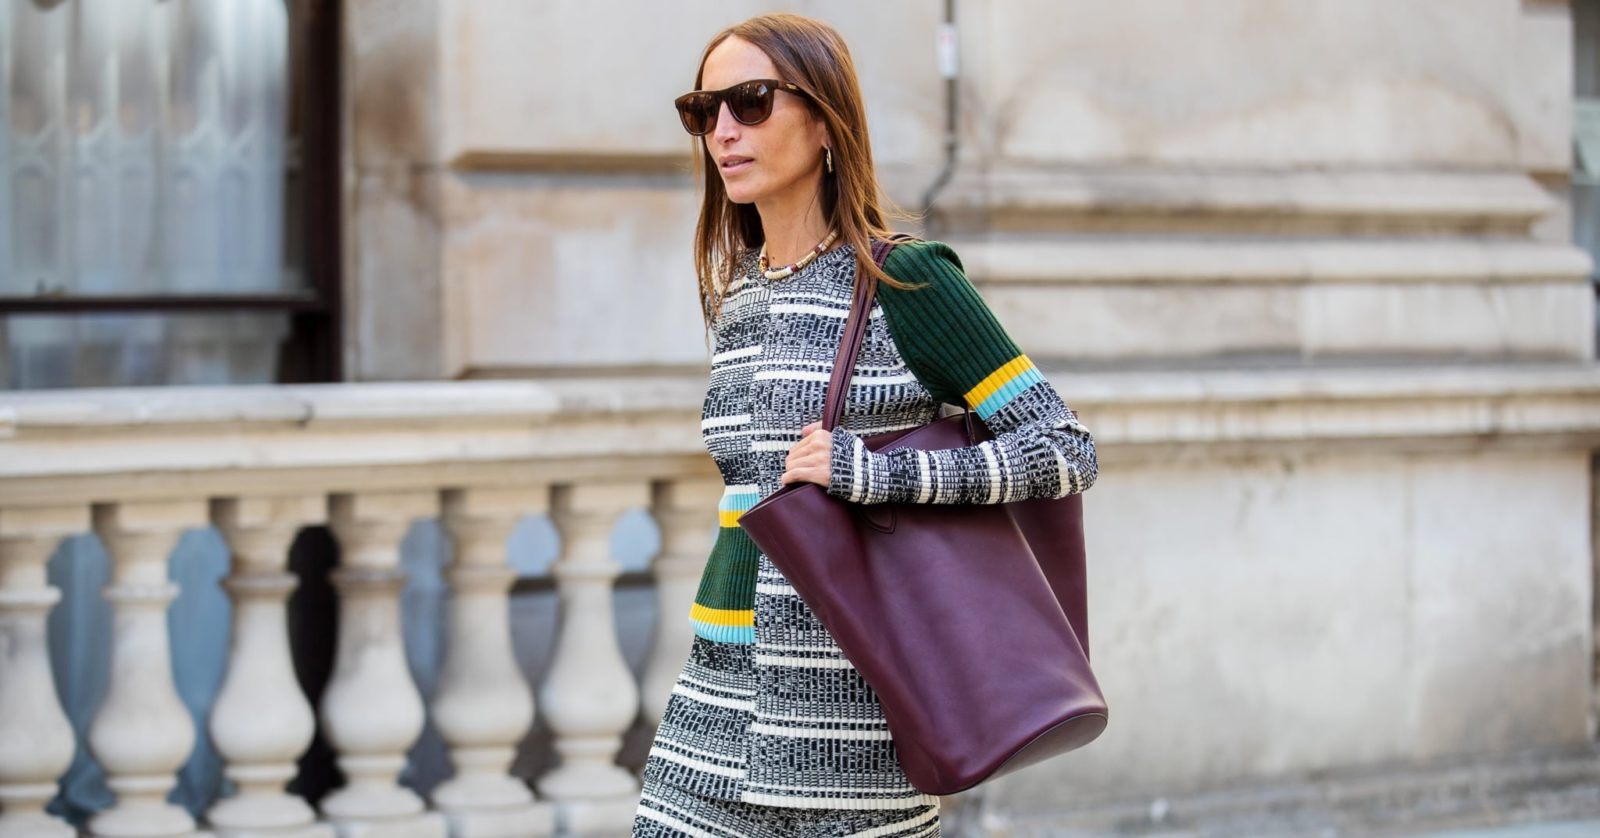 Knit dresses are the cosy wardrobe staple that work both in the office and at home